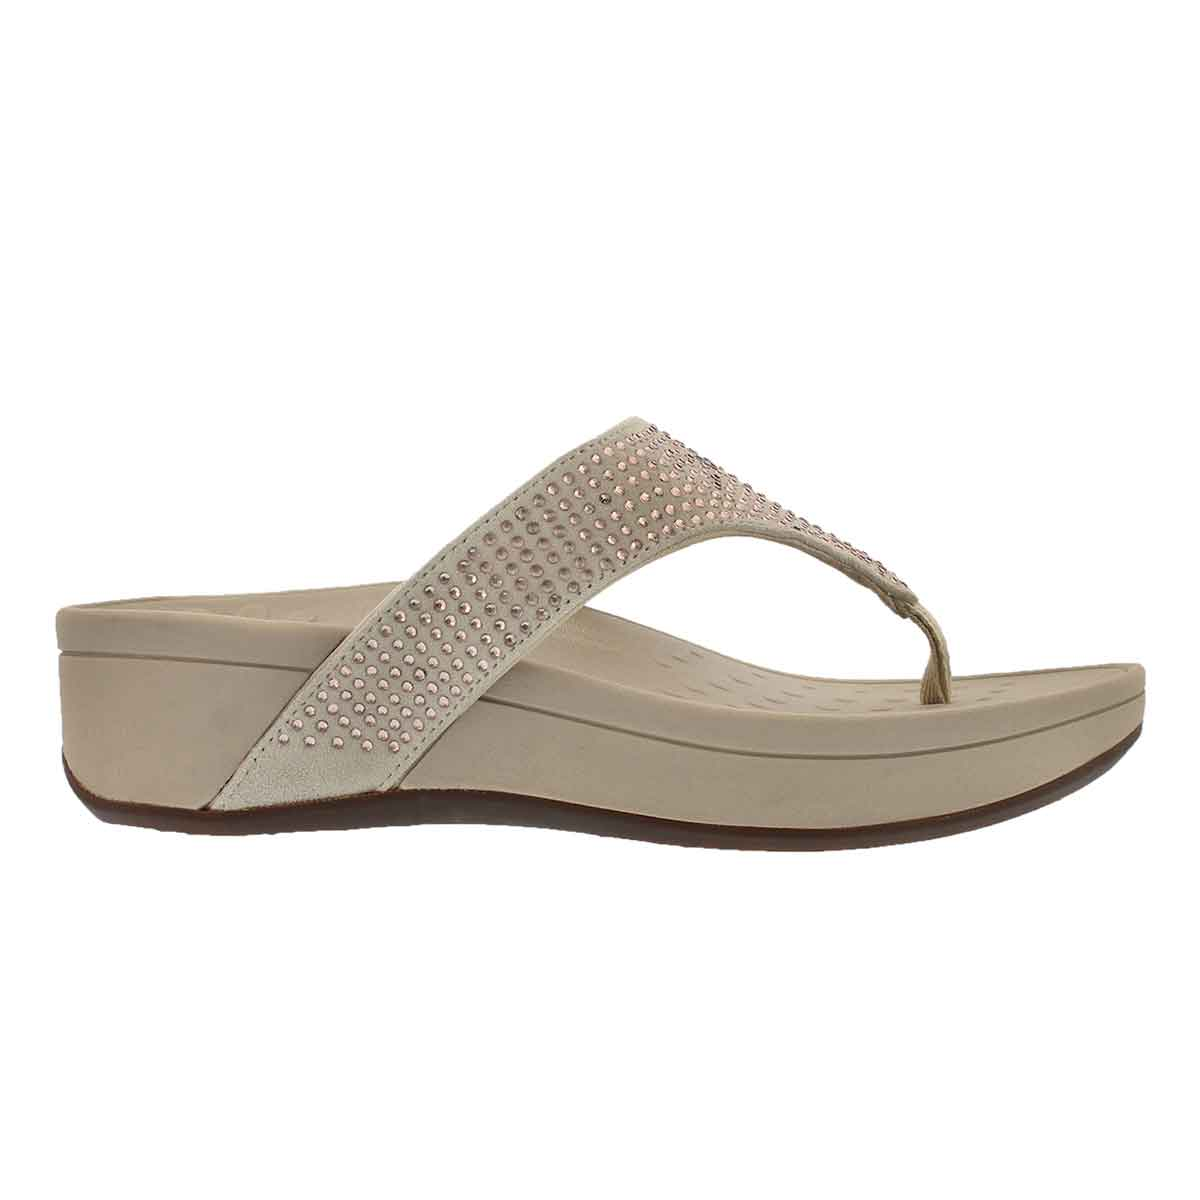 Lds Naples chmpgne arch support wdg sndl